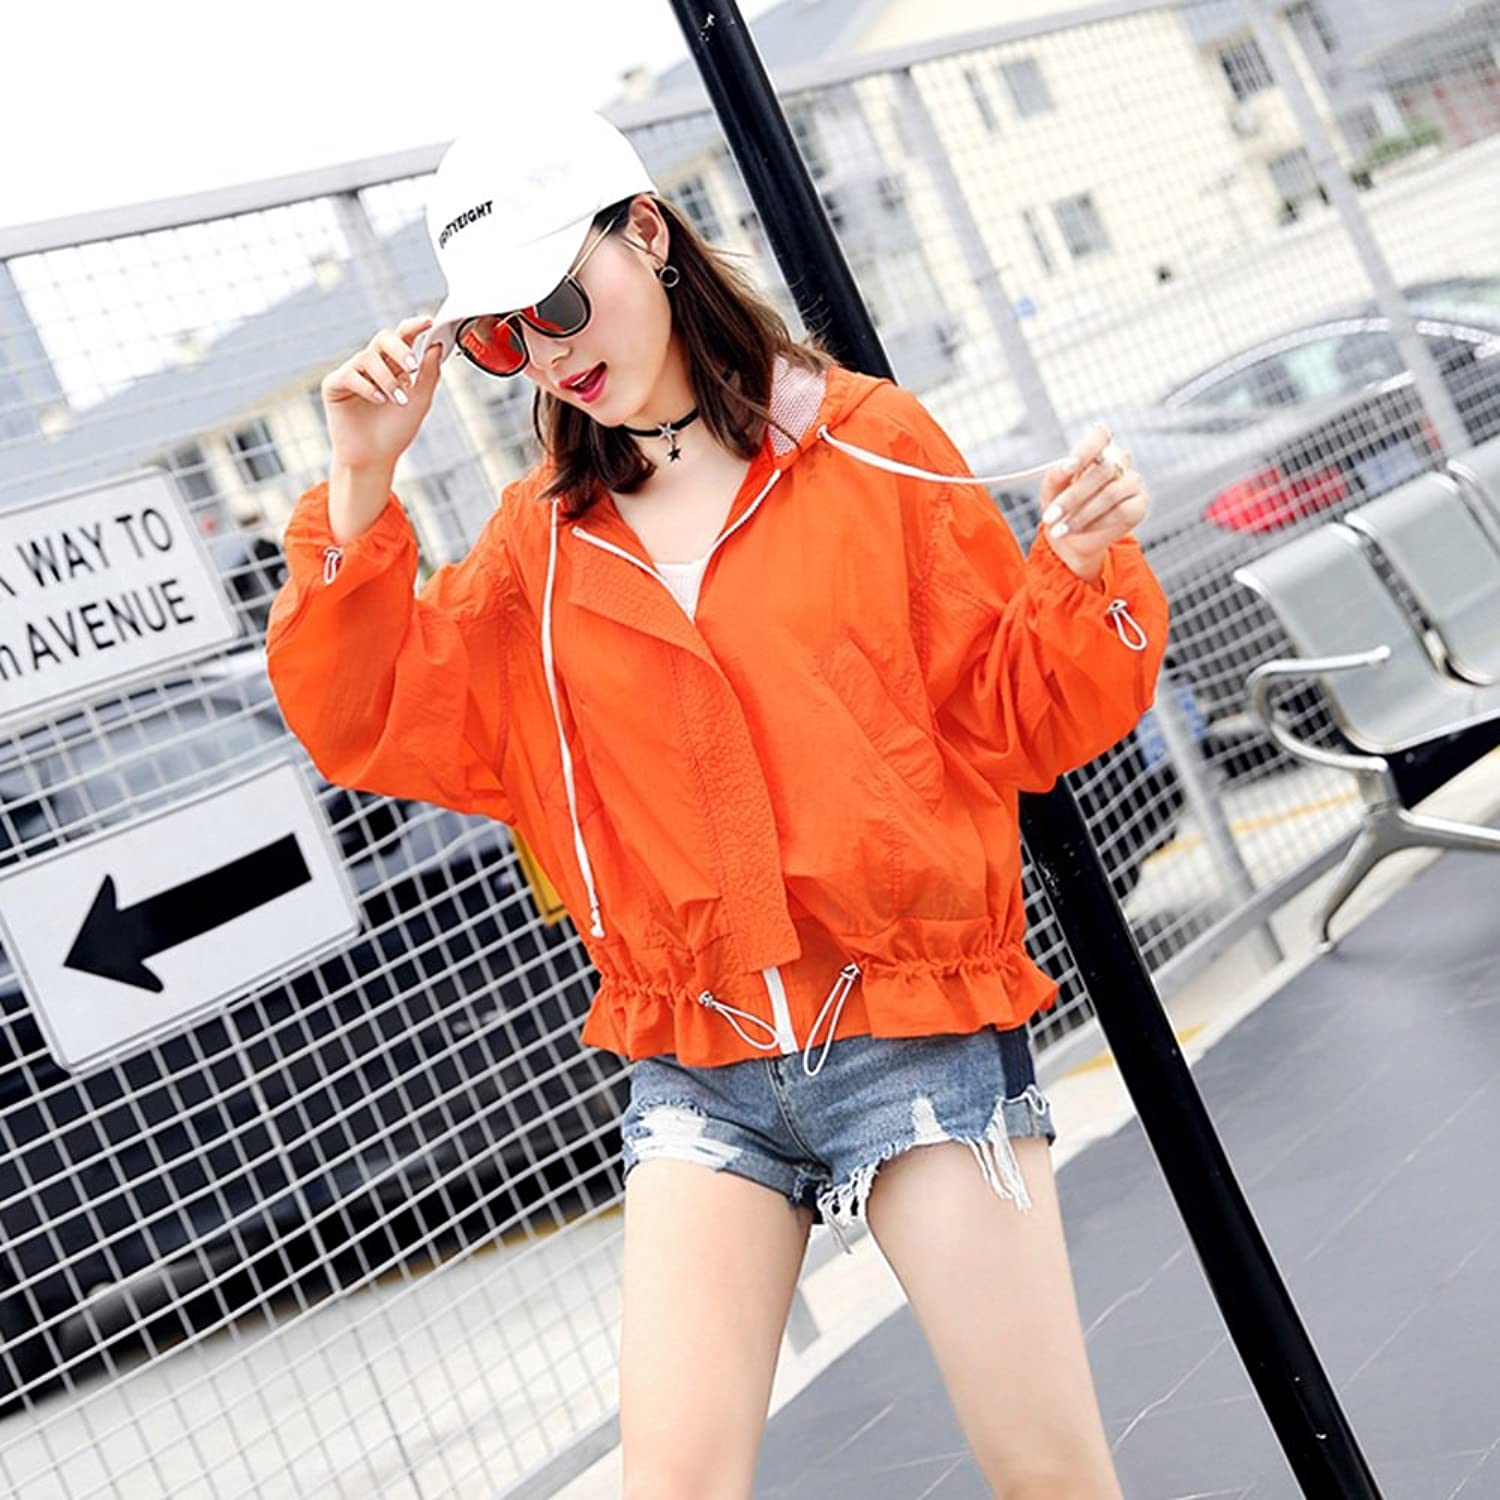 XRXY Woman Summer New Style Sun Predection Clothes Loose Casual Bat Sleeve Short Coat Creative Thin Sun Predection Clothing (2 colors Available) (color   A, Size   L)